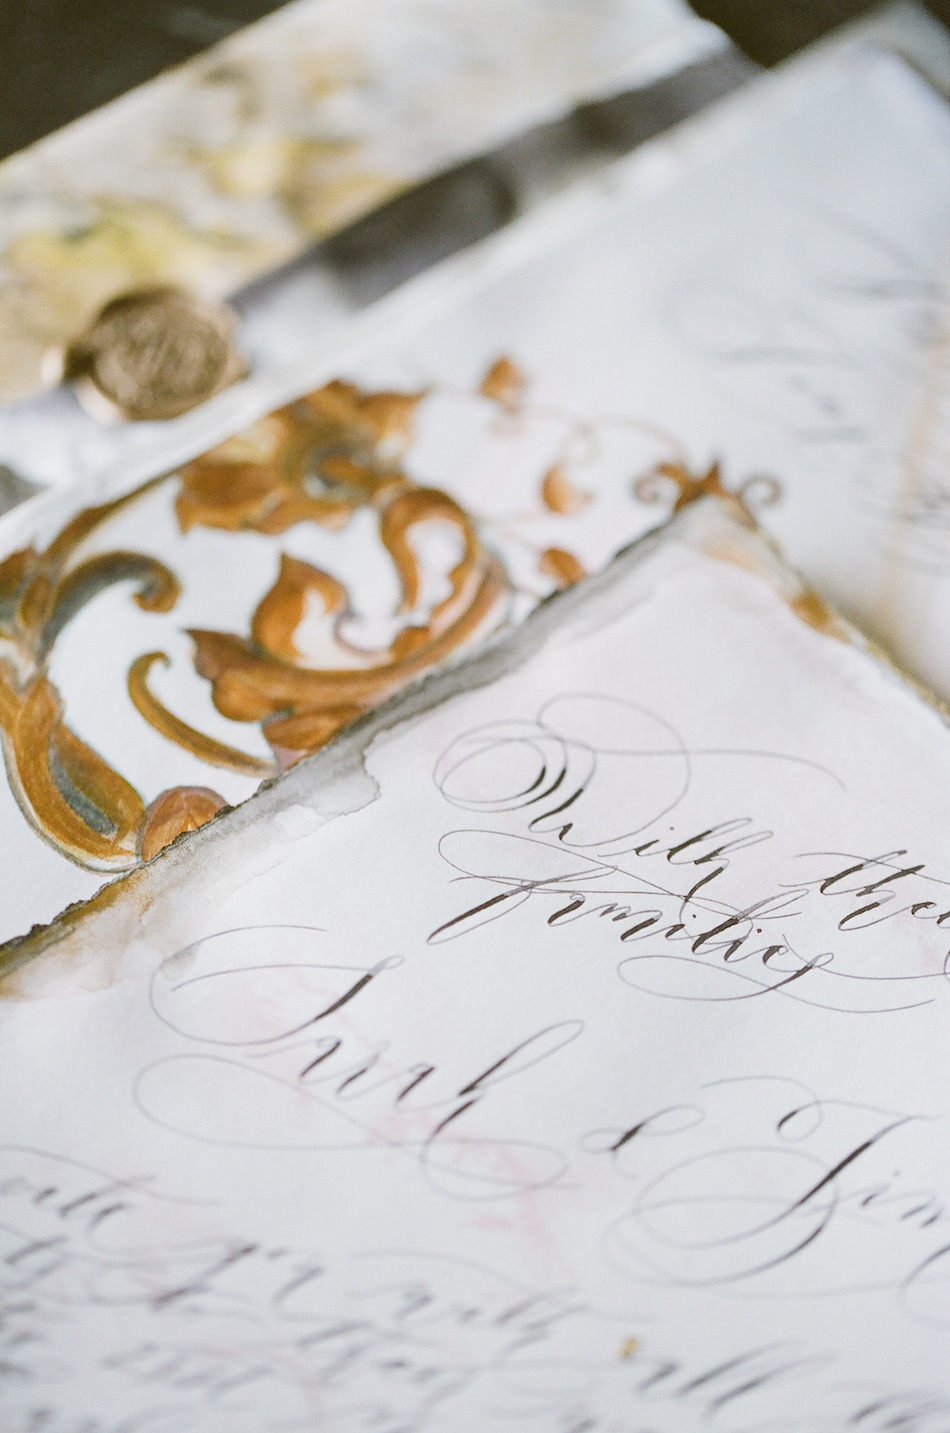 This blogpost tells the story of how I became a wedding invitation designer and the challenges I faced during the early years in business.